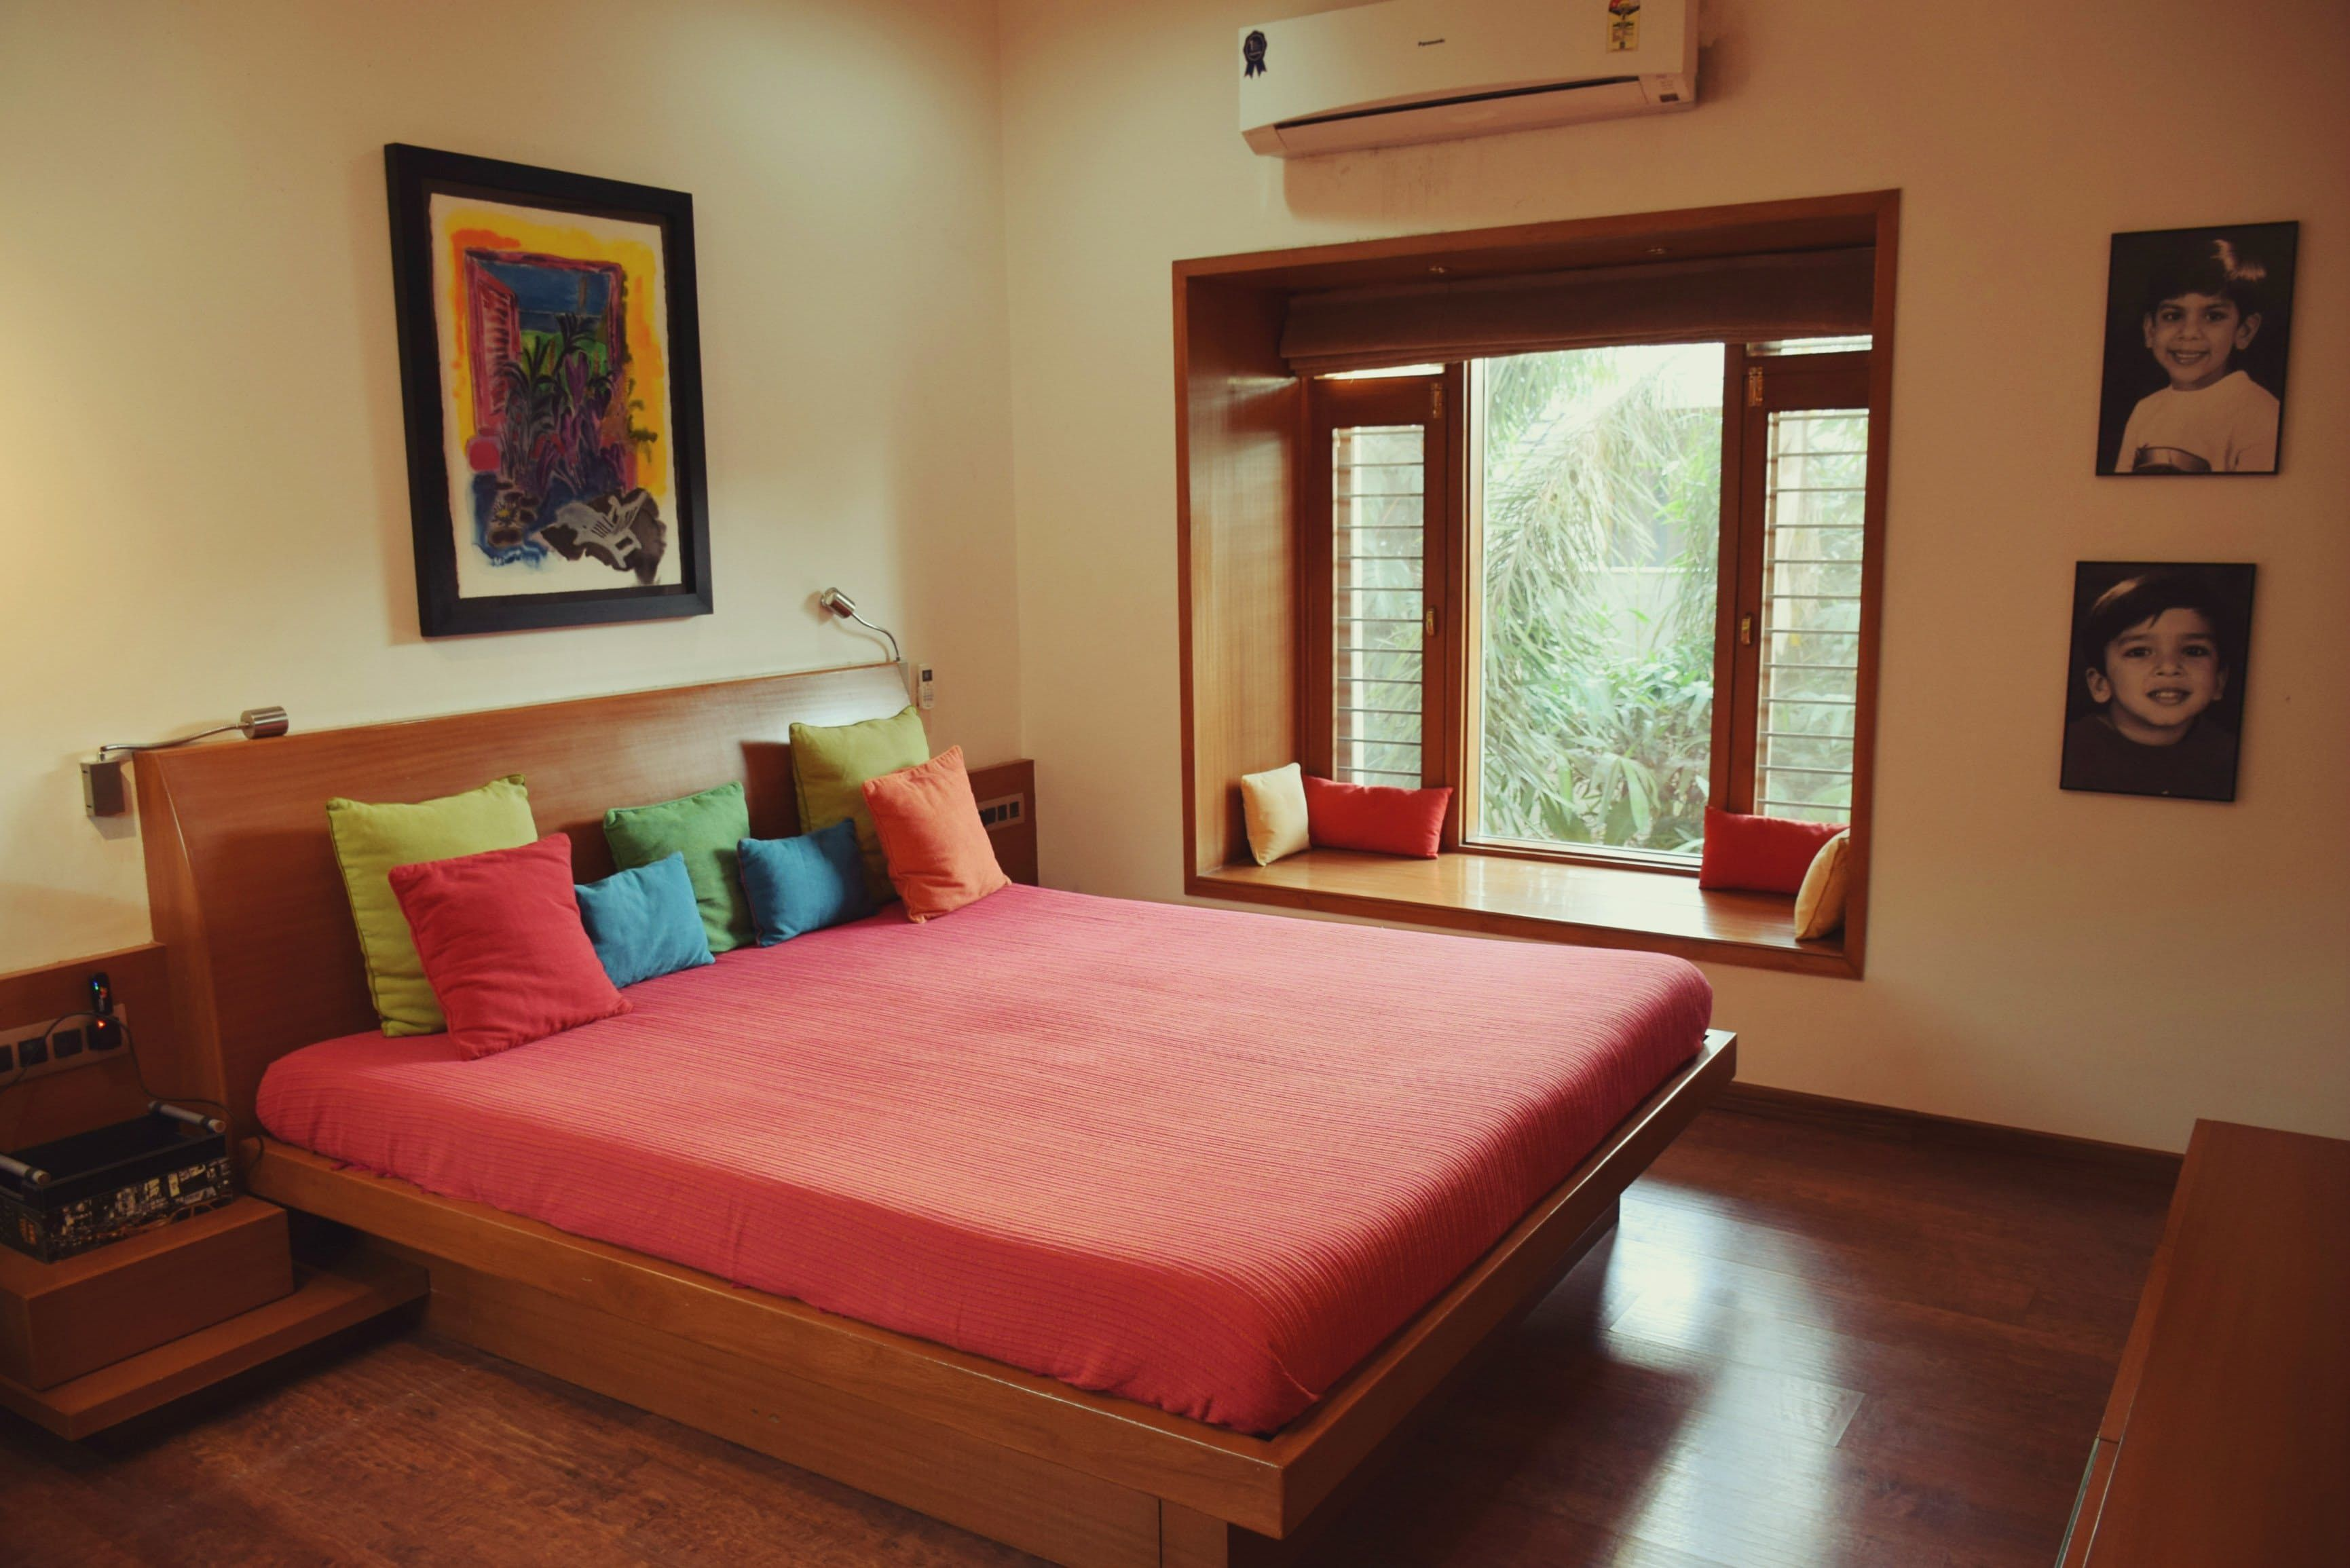 Alpavi Utpal S Mix Of Old And New Home Decor Bedroom Modern